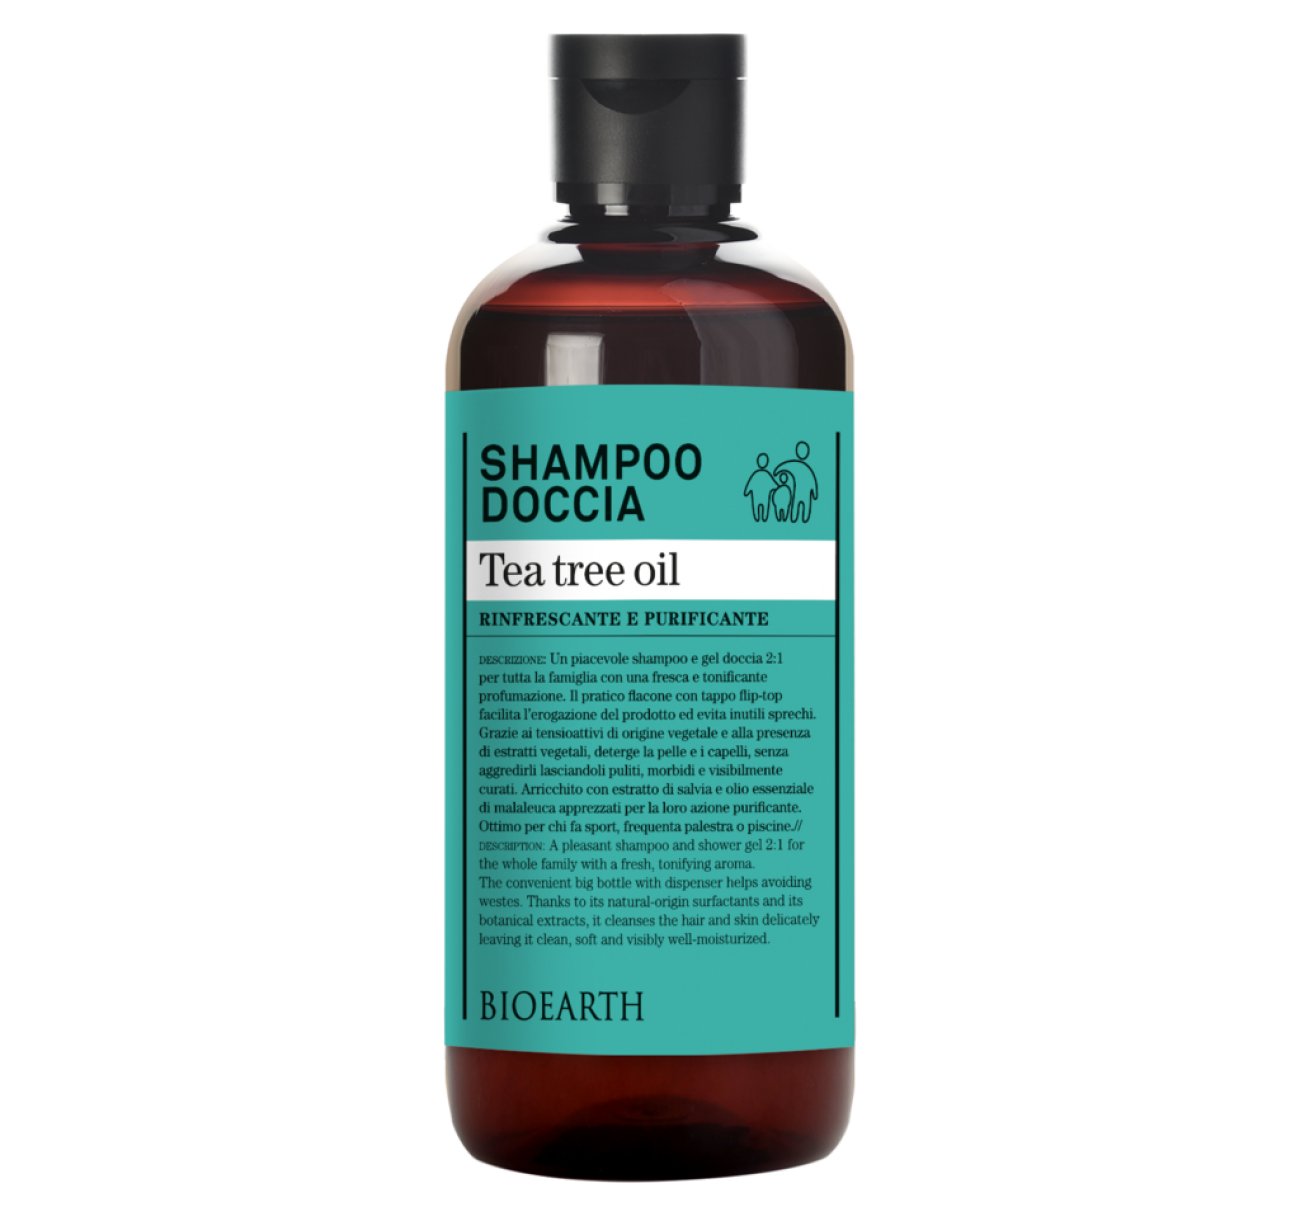 Shampoo Doccia Tea Tree oil 500ml